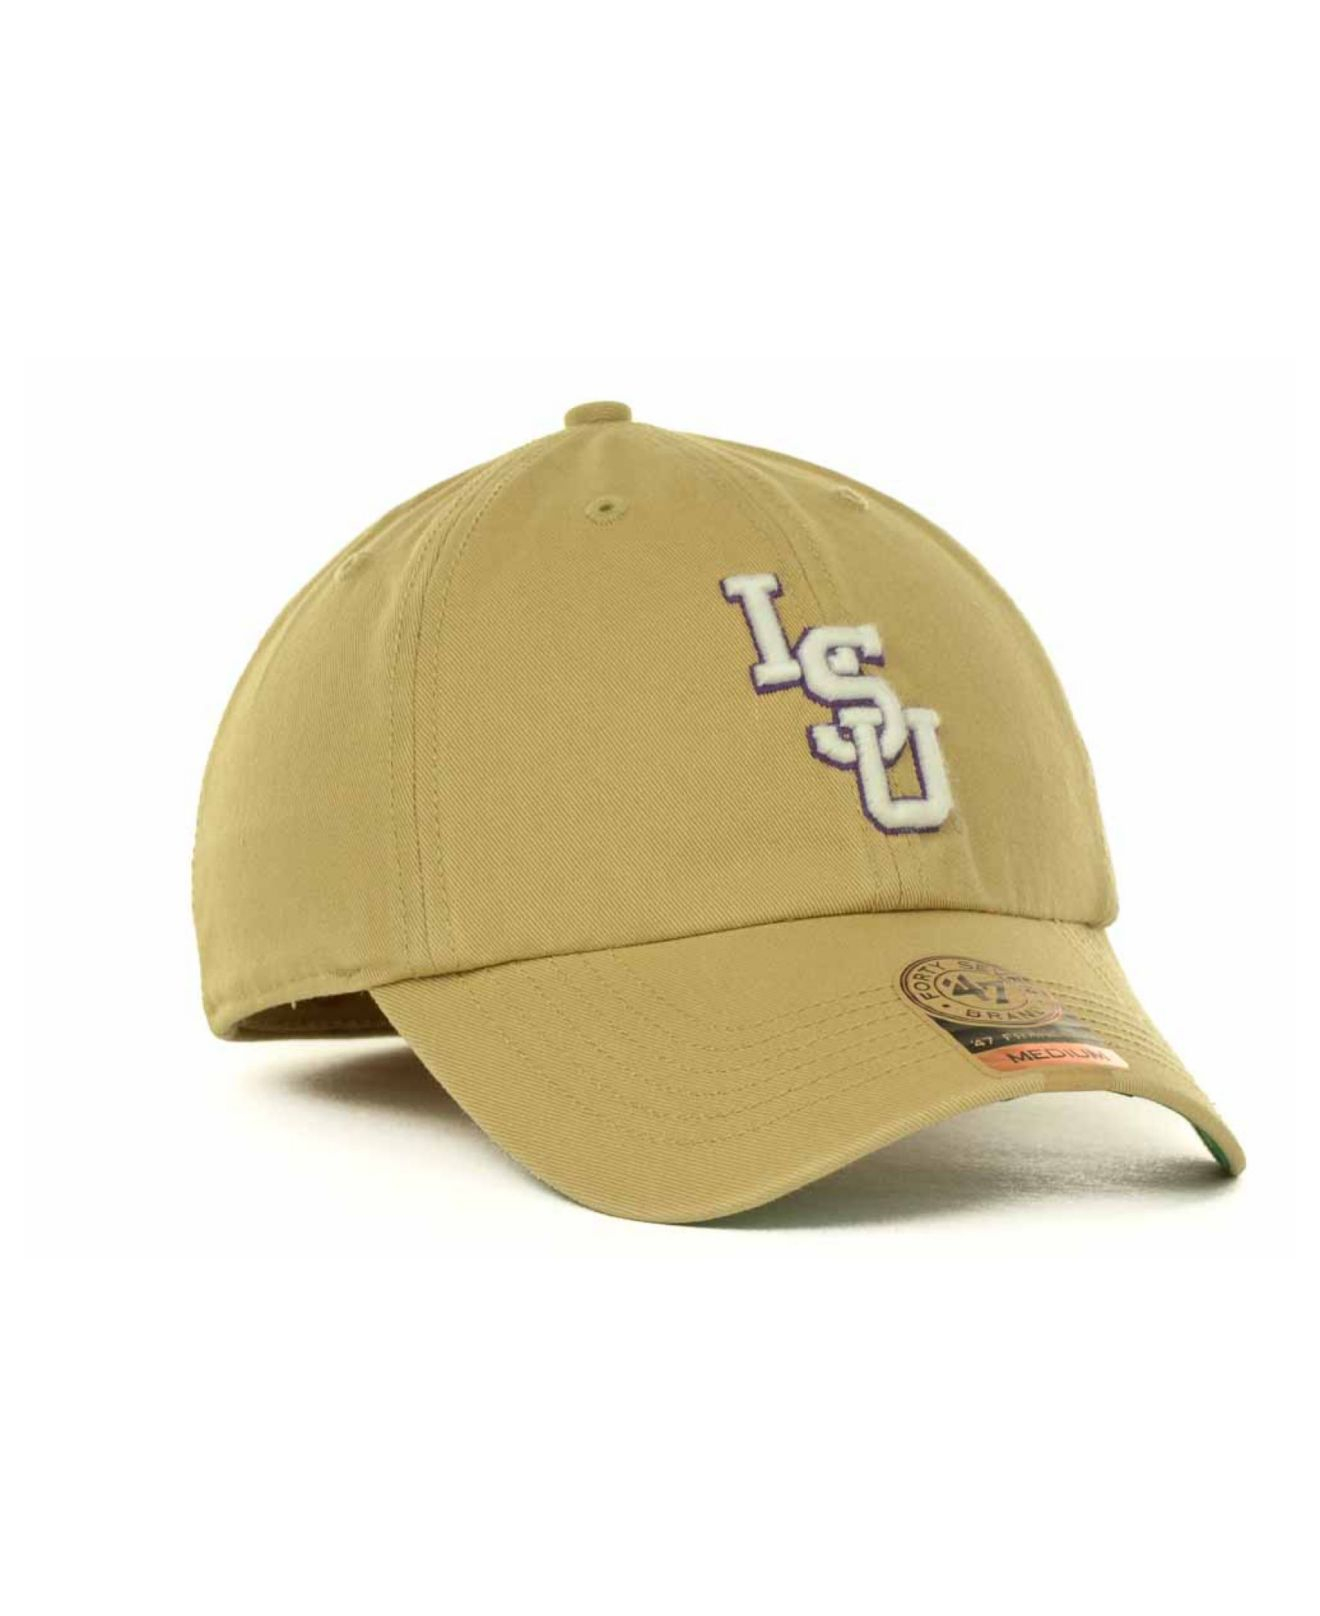 timeless design c07fa 46893 ... clearance lyst 47 brand lsu tigers khaki franchise cap in natural for  men c7cdc a5d80